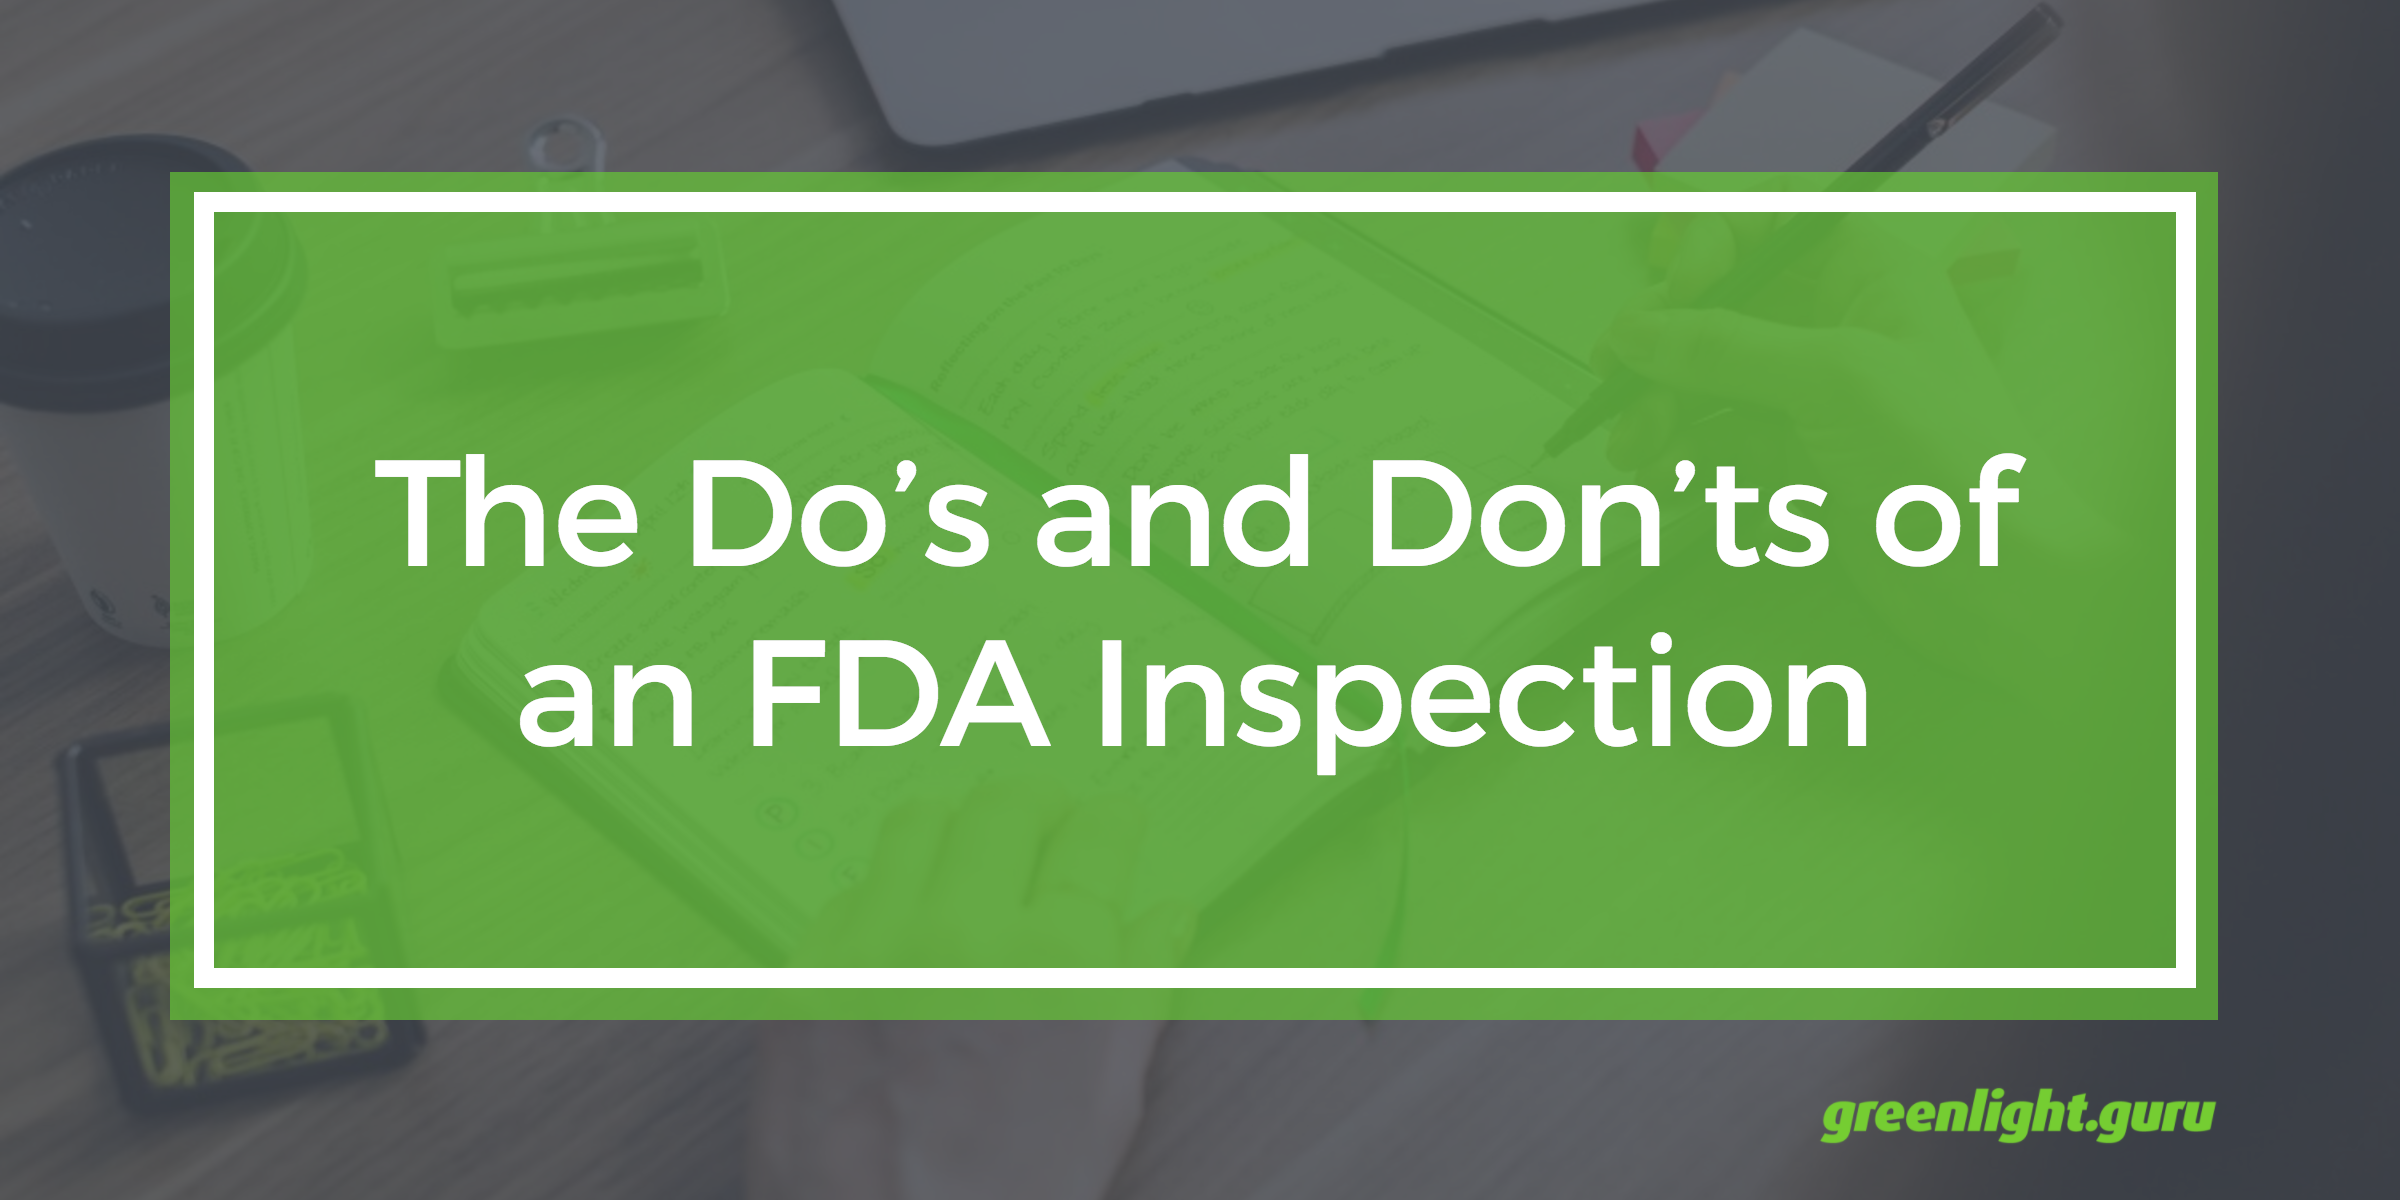 The Do's and Don'ts of an FDA Inspection - Featured Image